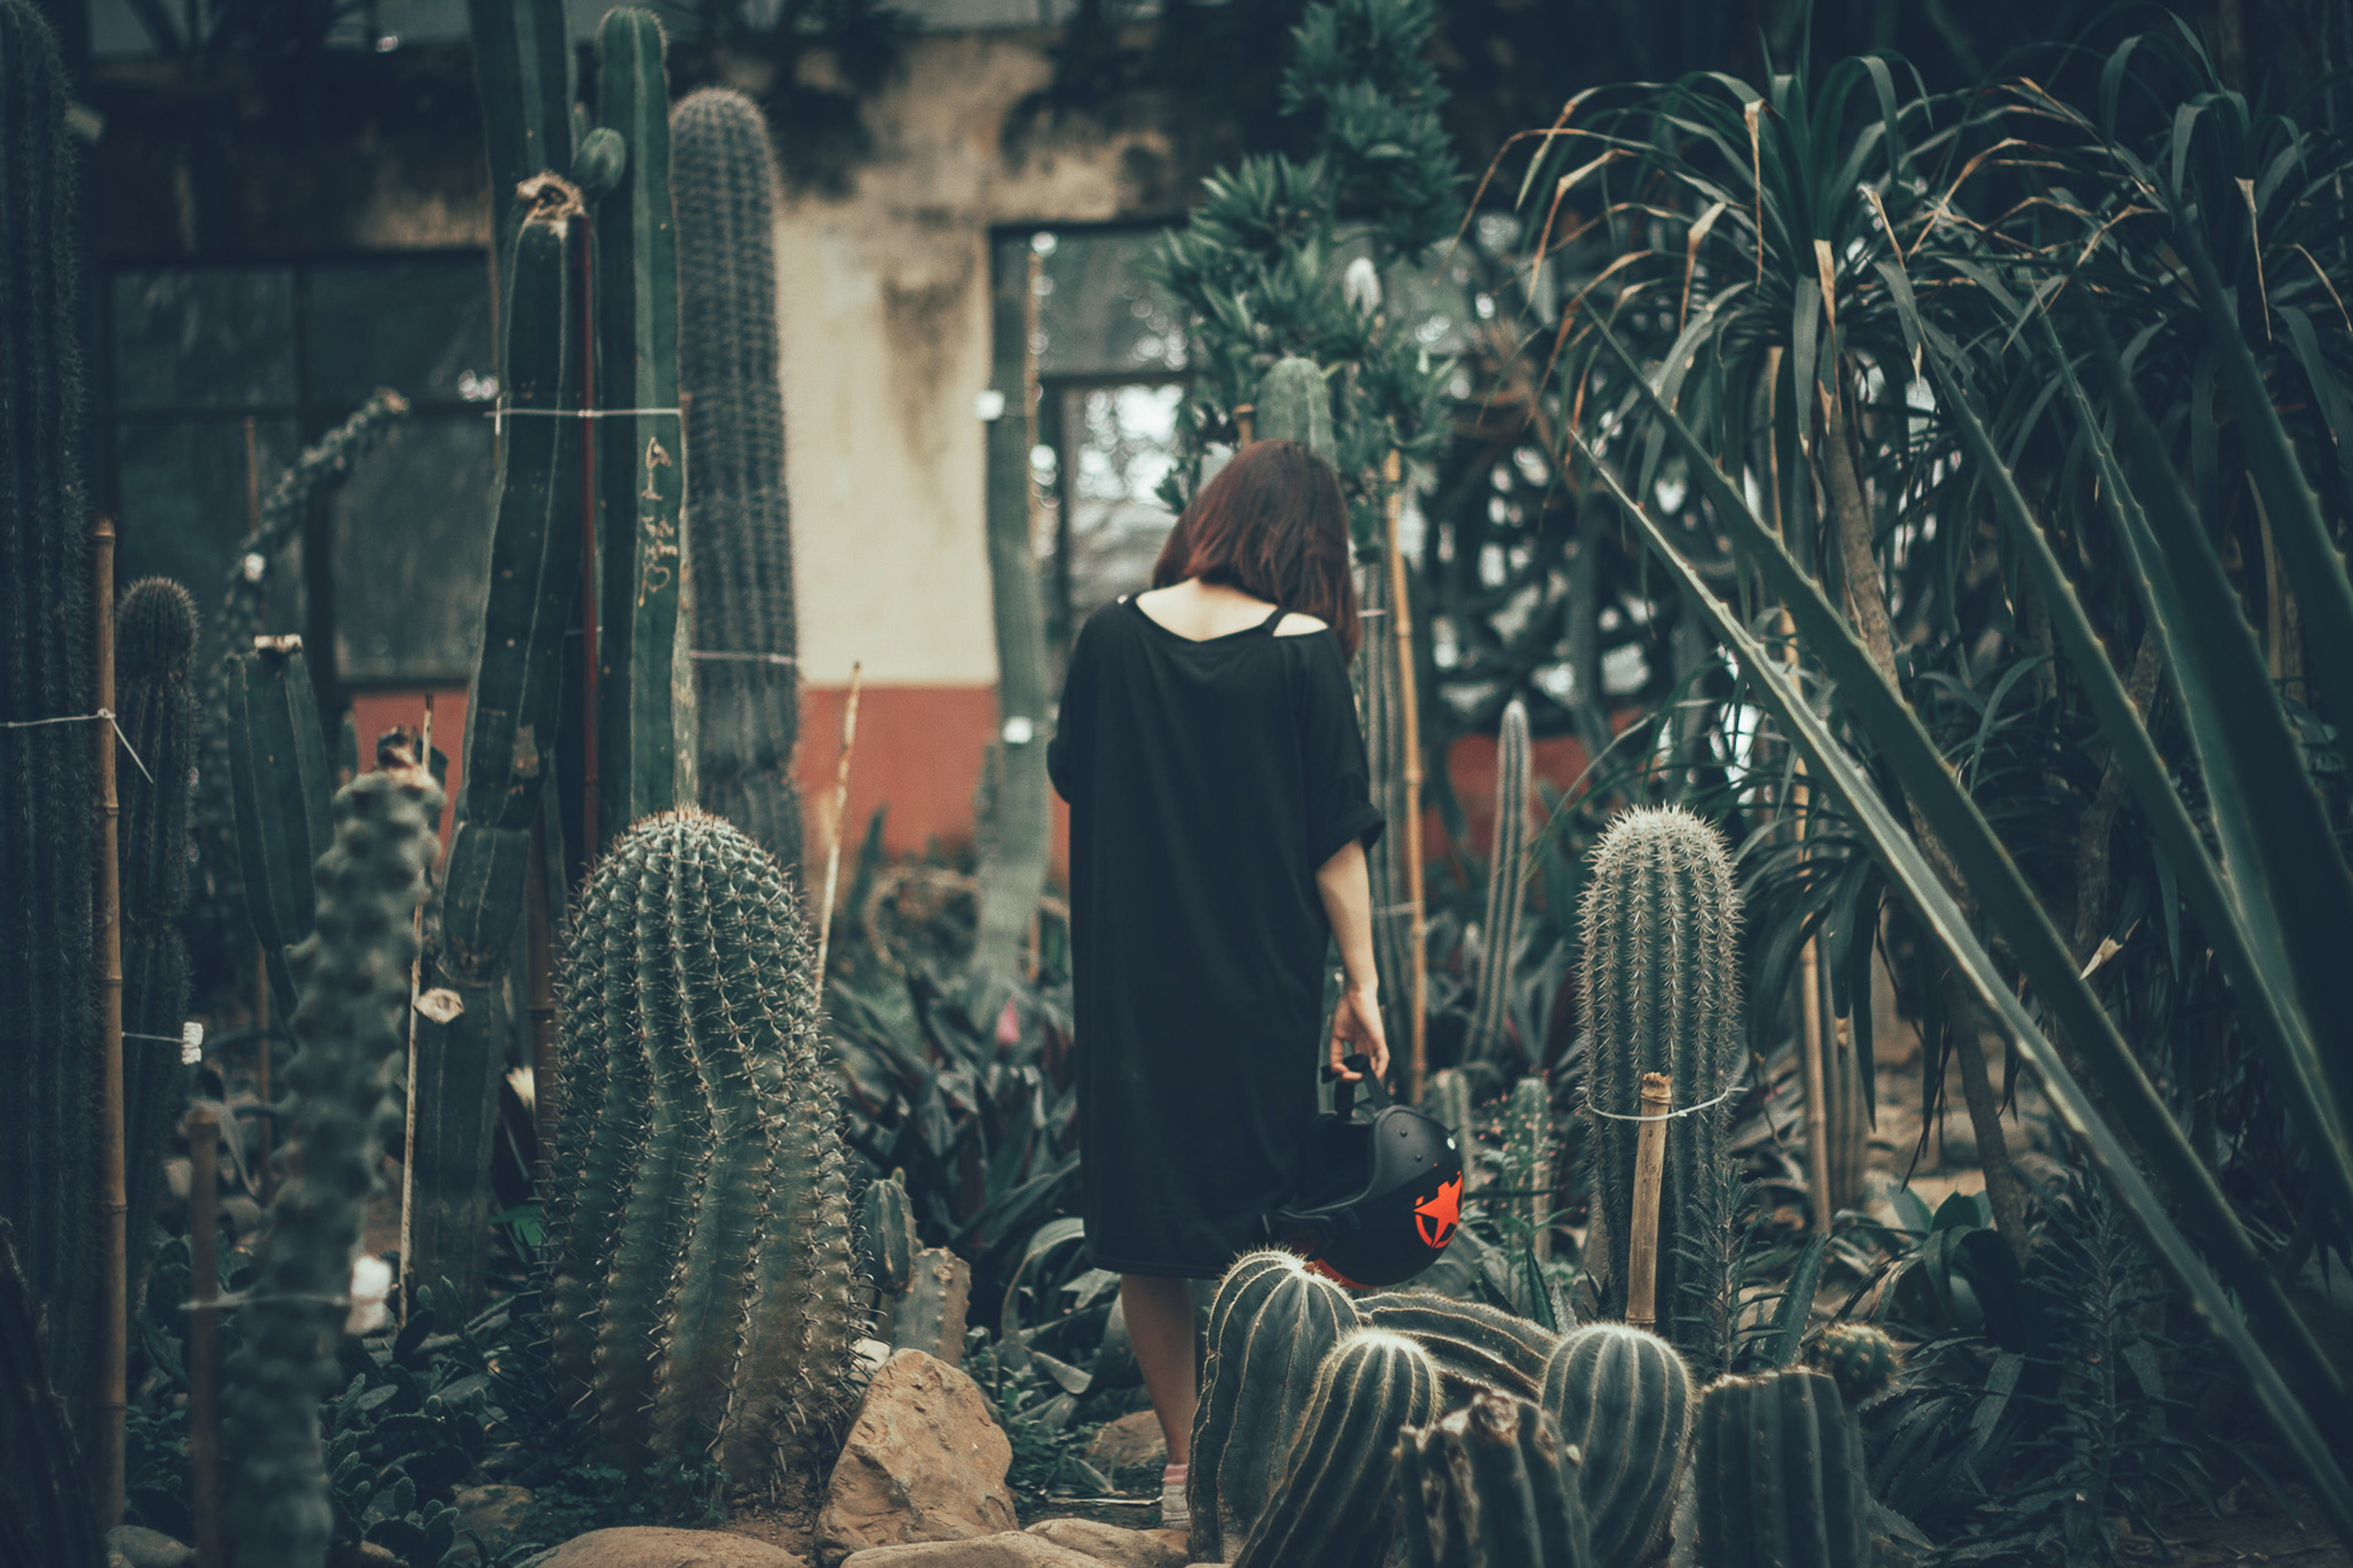 Low Light Photography of Woman in Black Dress Standing on Field Surrounded by Cactus Plants